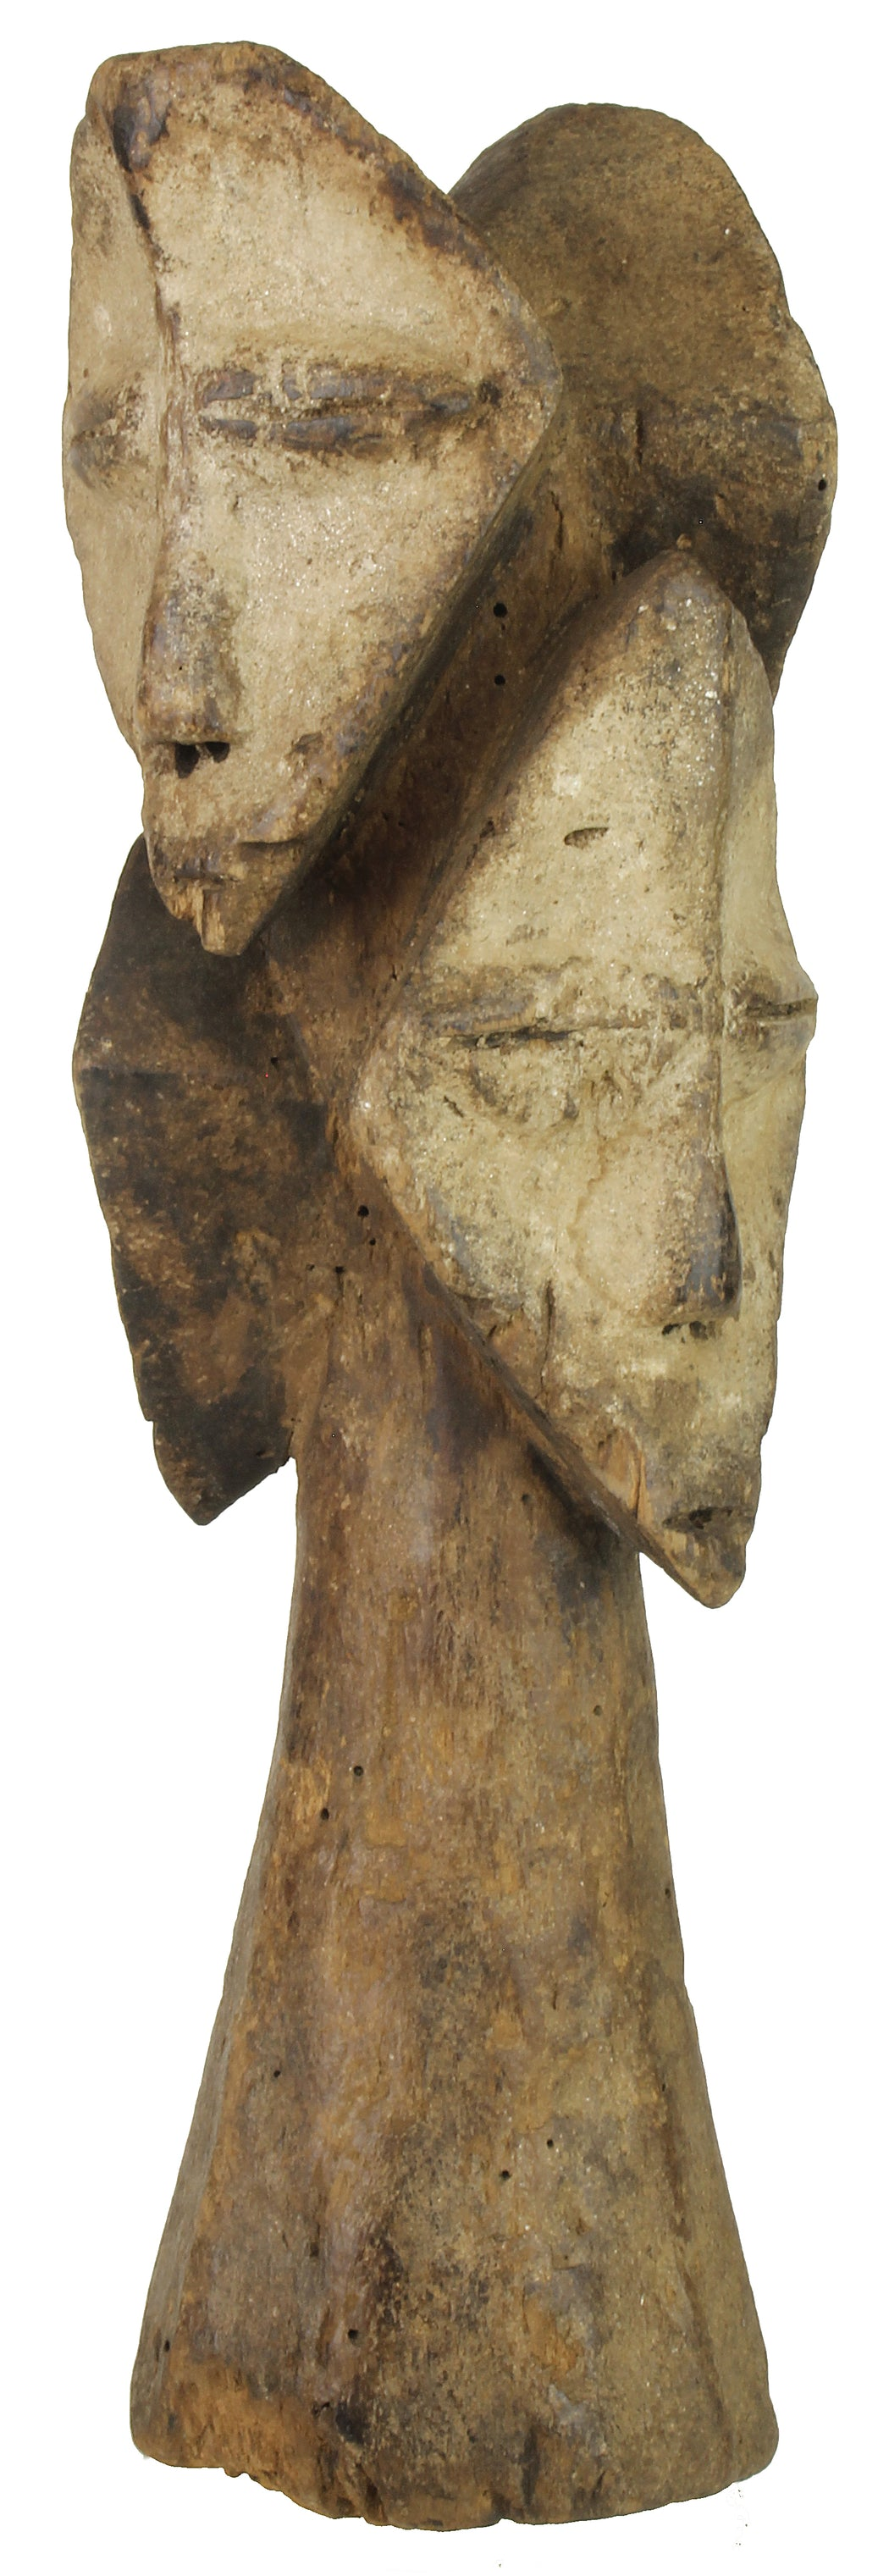 "Lega Tribal Figure Statue of Congo | 11"" - Niger Bend"